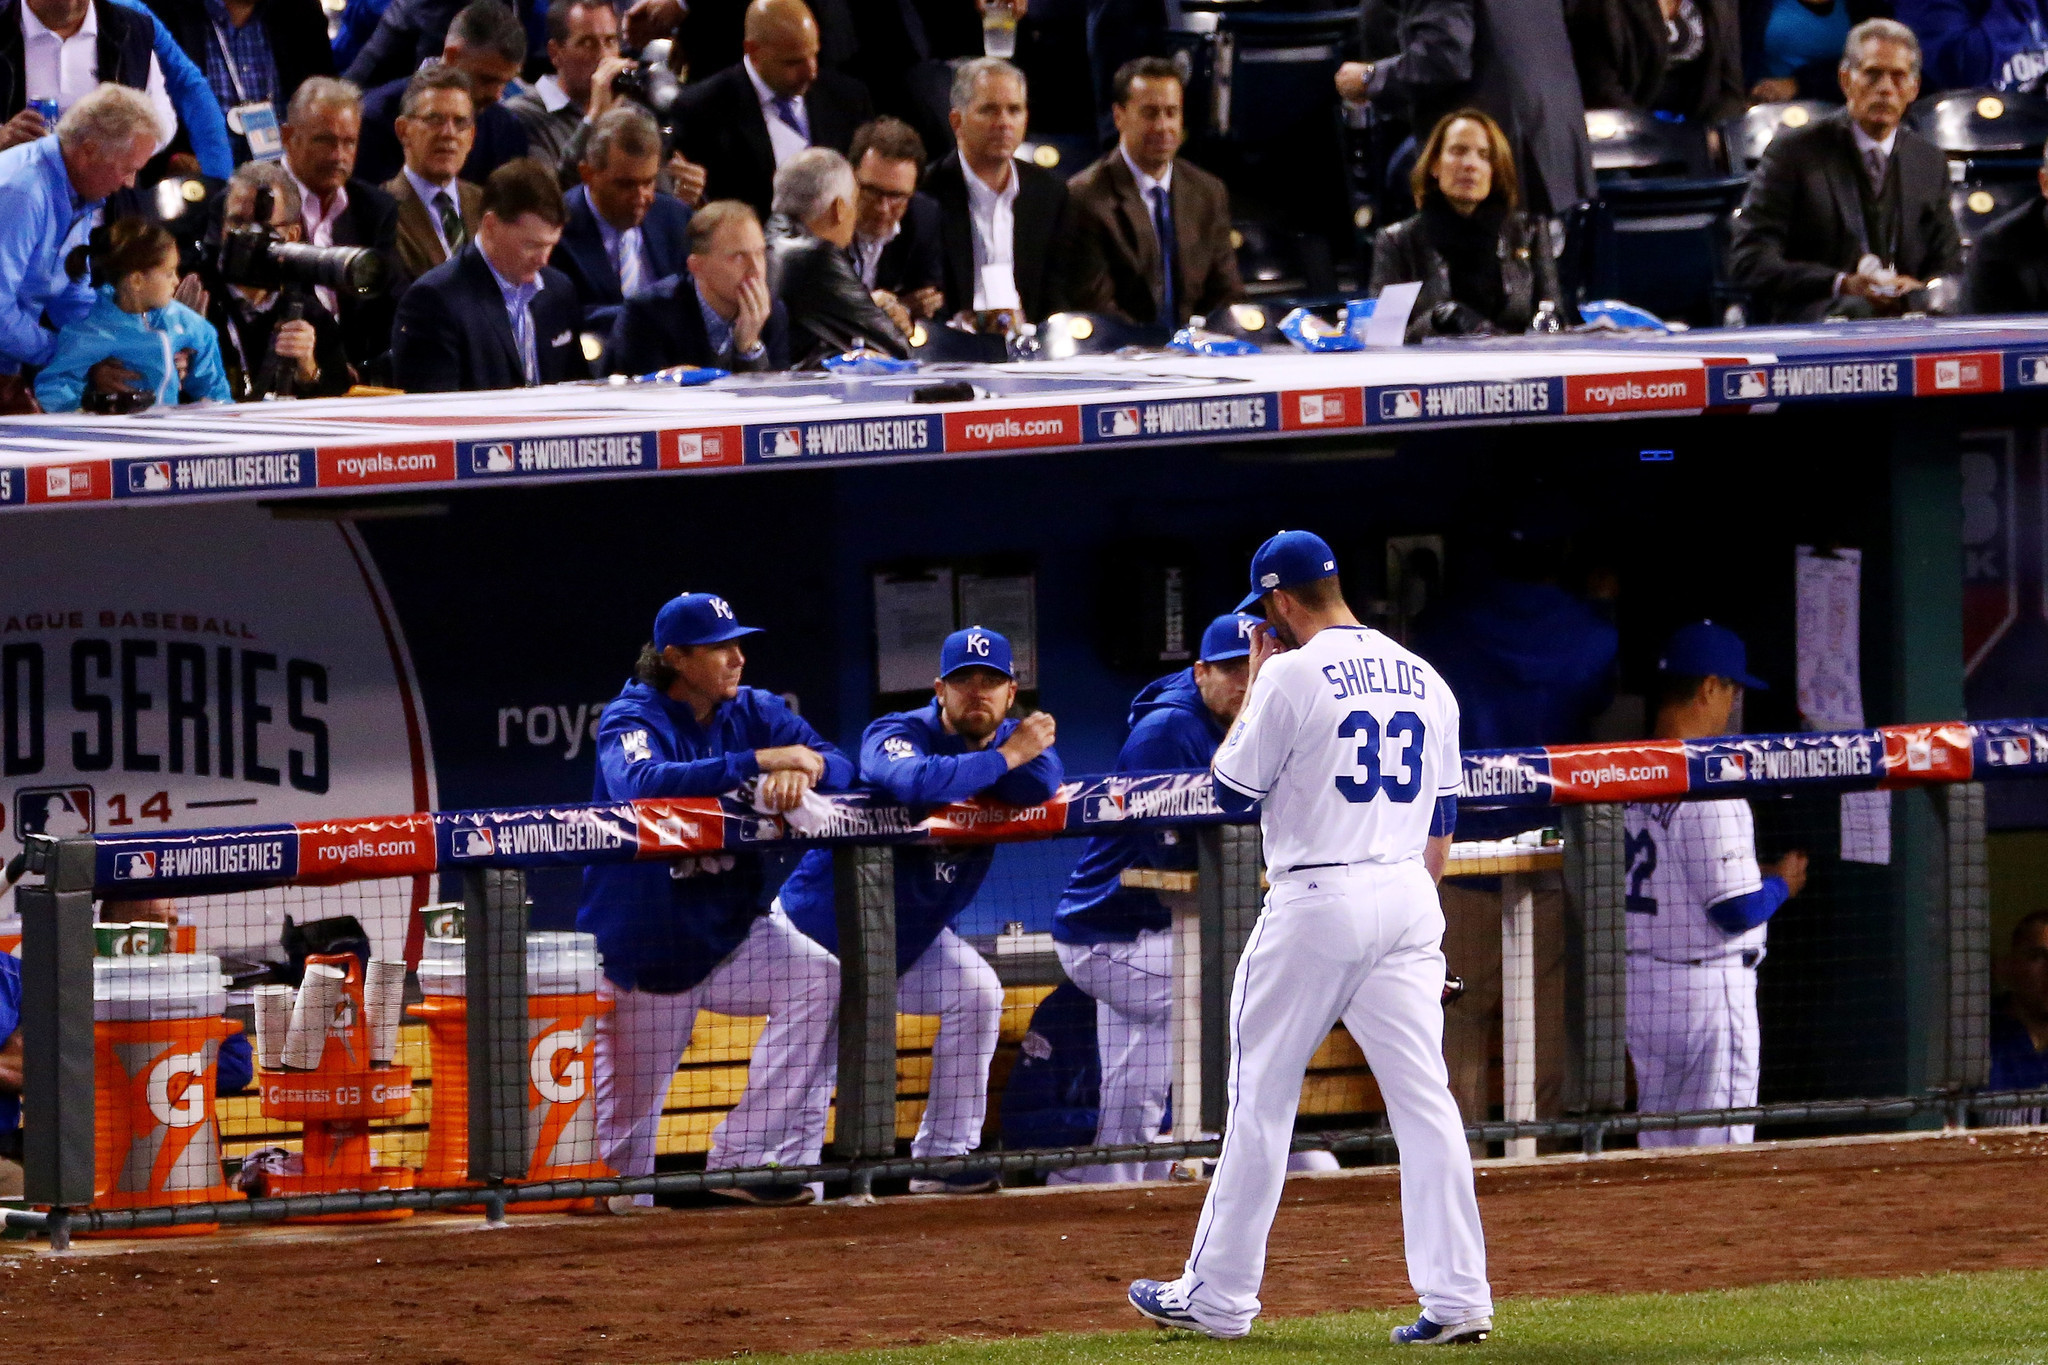 Royals run out of magic in Game 1 loss to Giants